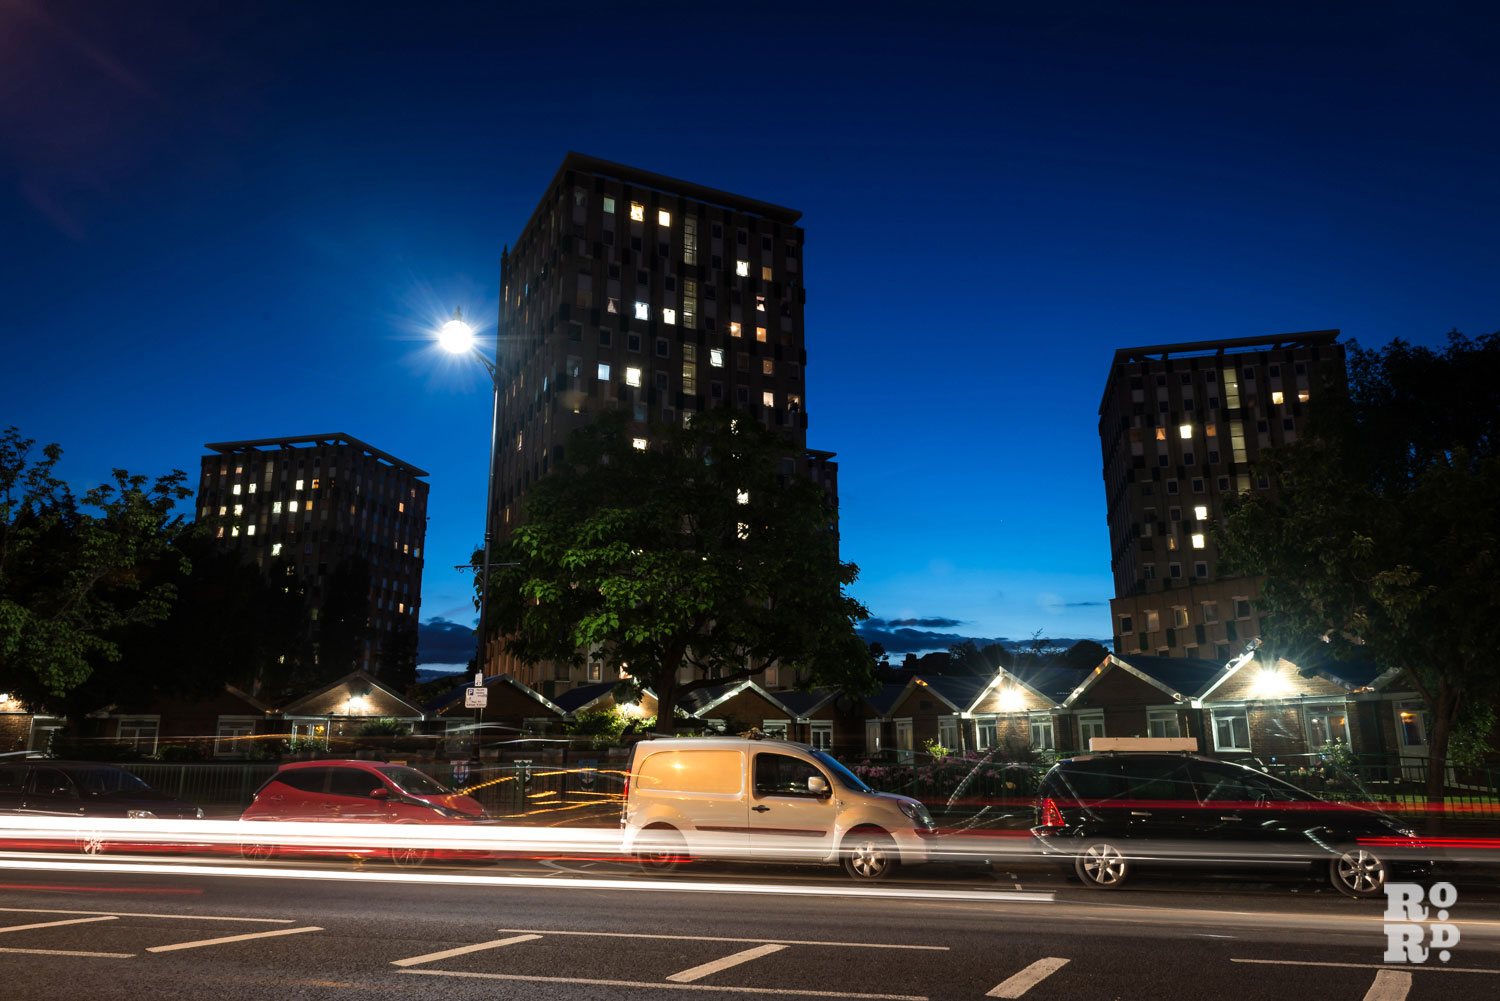 Claire Watts photograph of Cranbrook Estate 9 Cranbrook estate at night with cars passing by